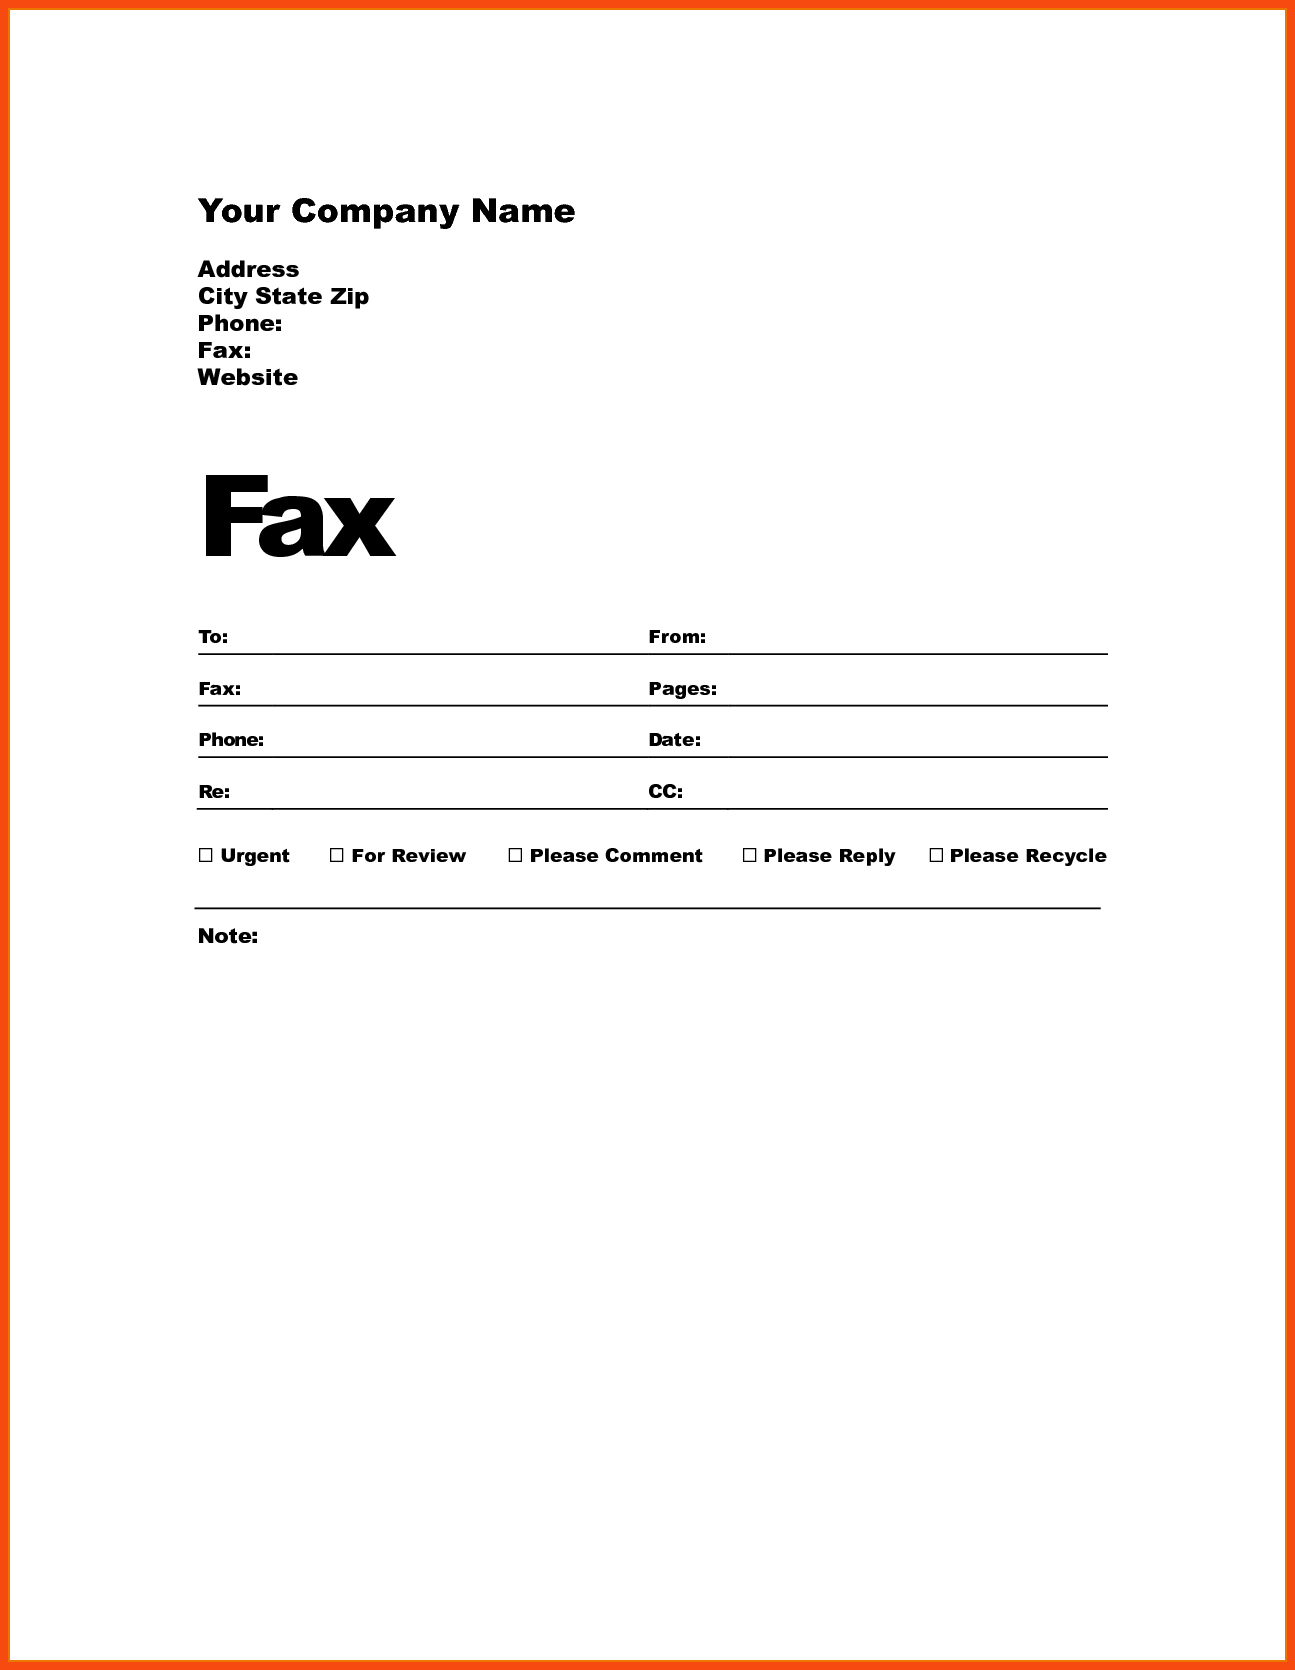 photograph about Printable Fax Cover Sheets Templates known as Well-informed Fax Address Sheet [No cost]^^ Fax Deal with Sheet Template